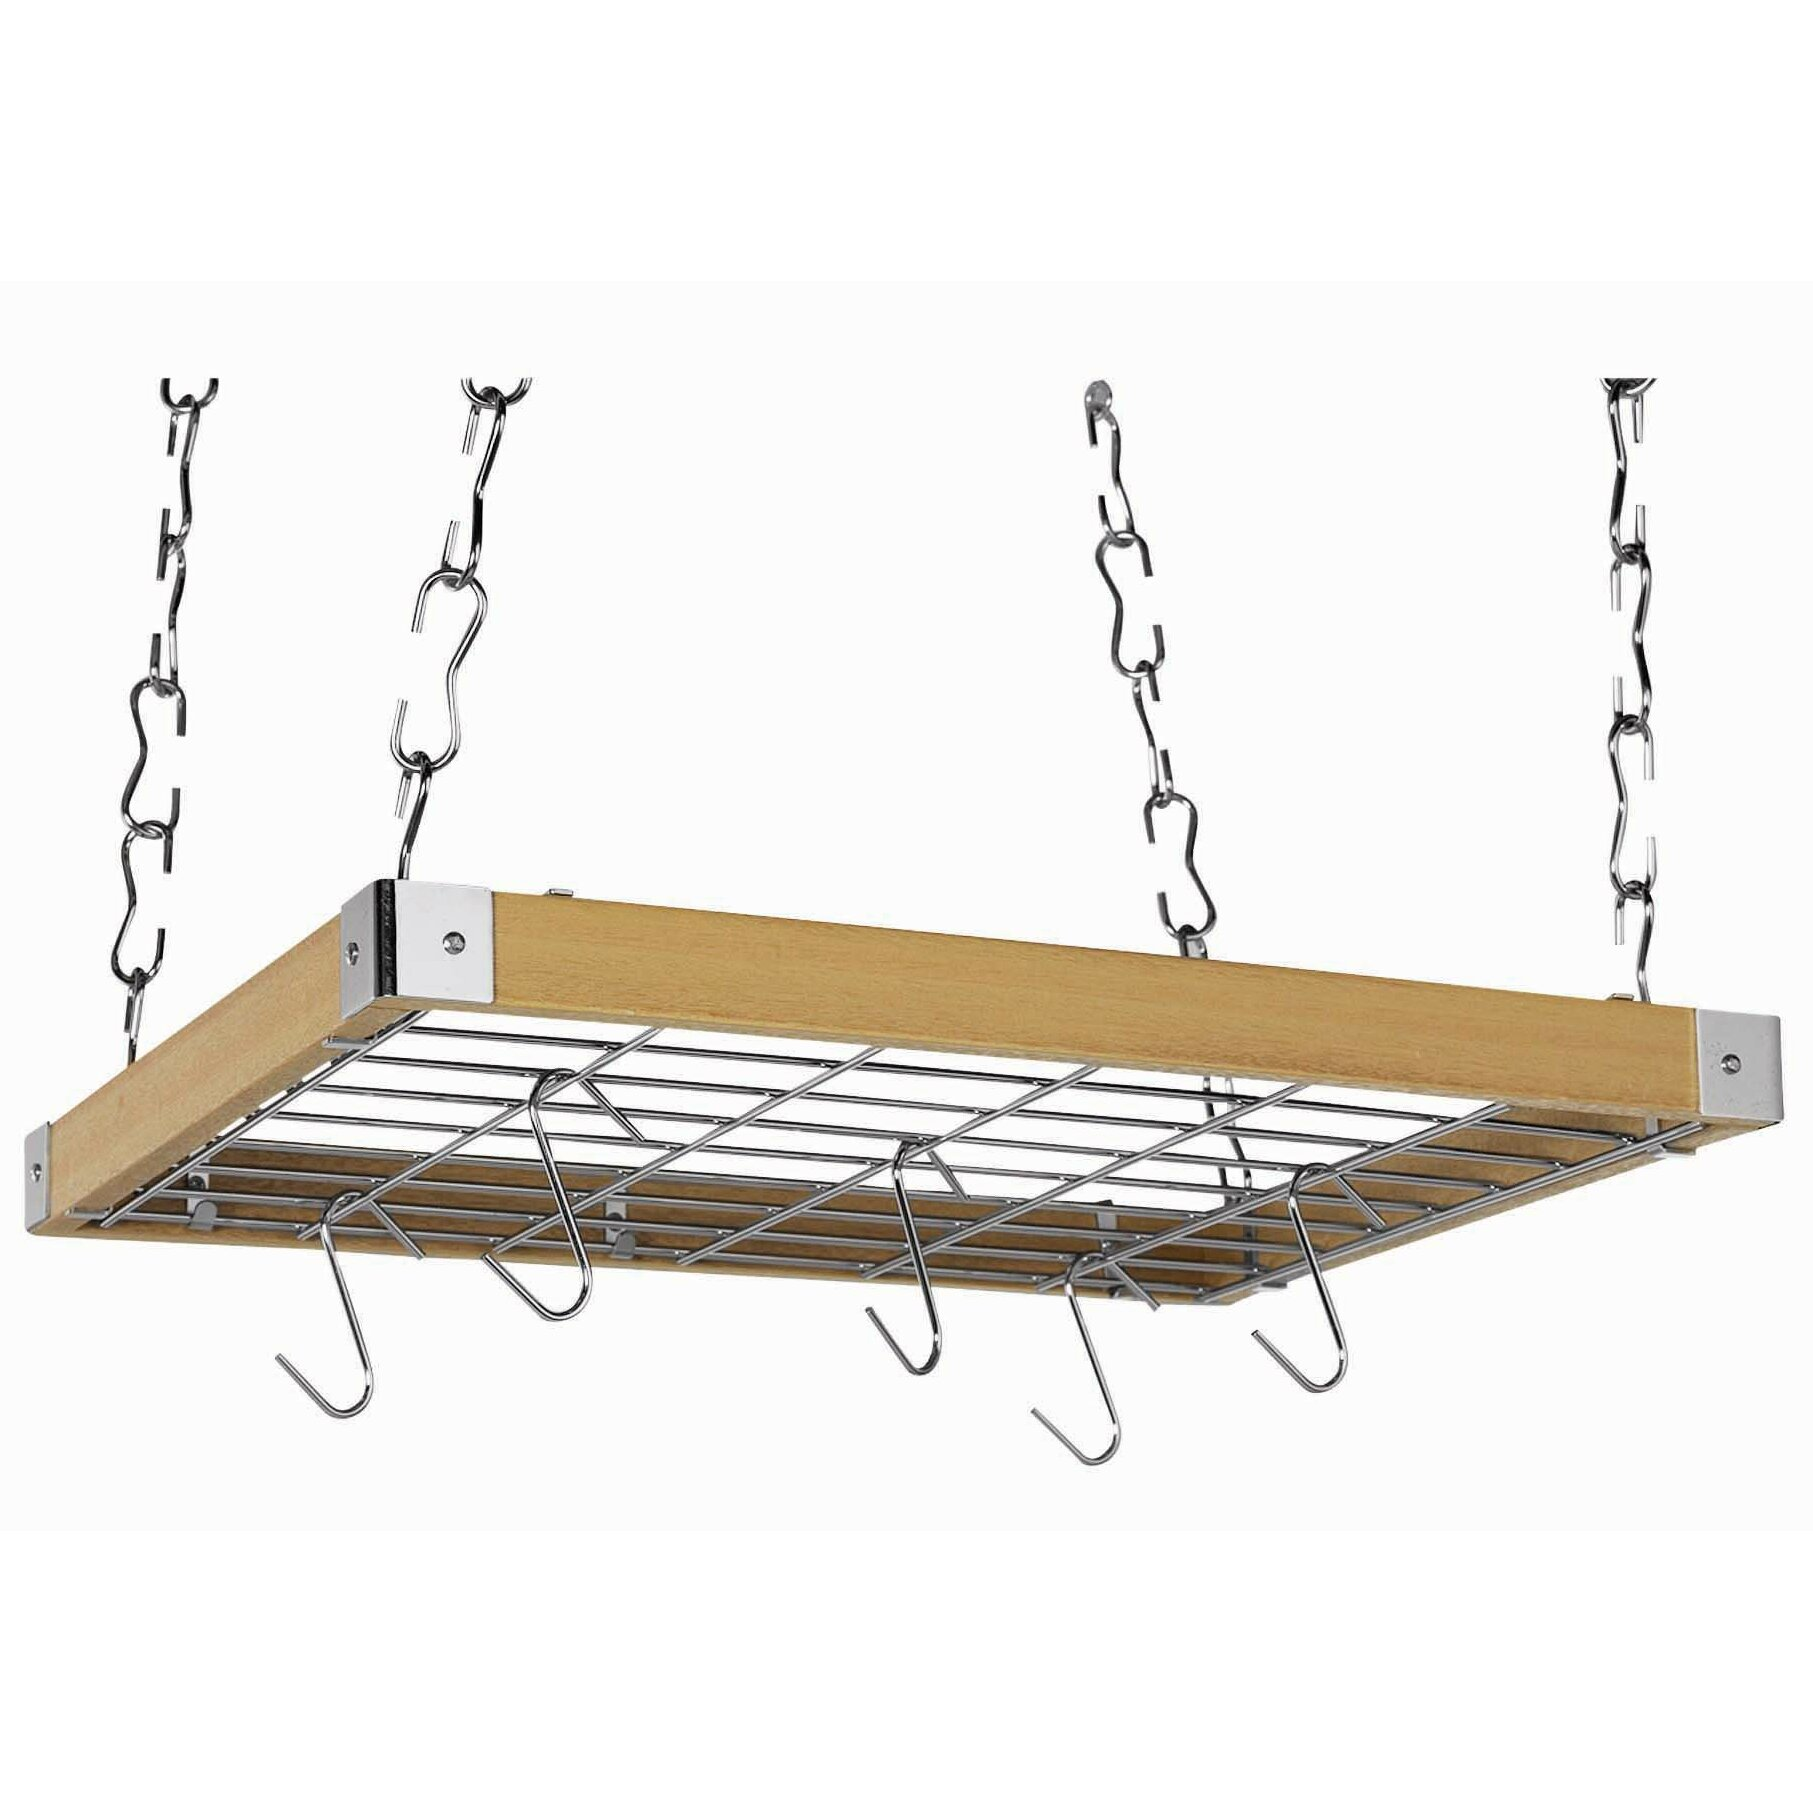 Concept Housewares Rectangular Ceiling Mounted Pot Rack